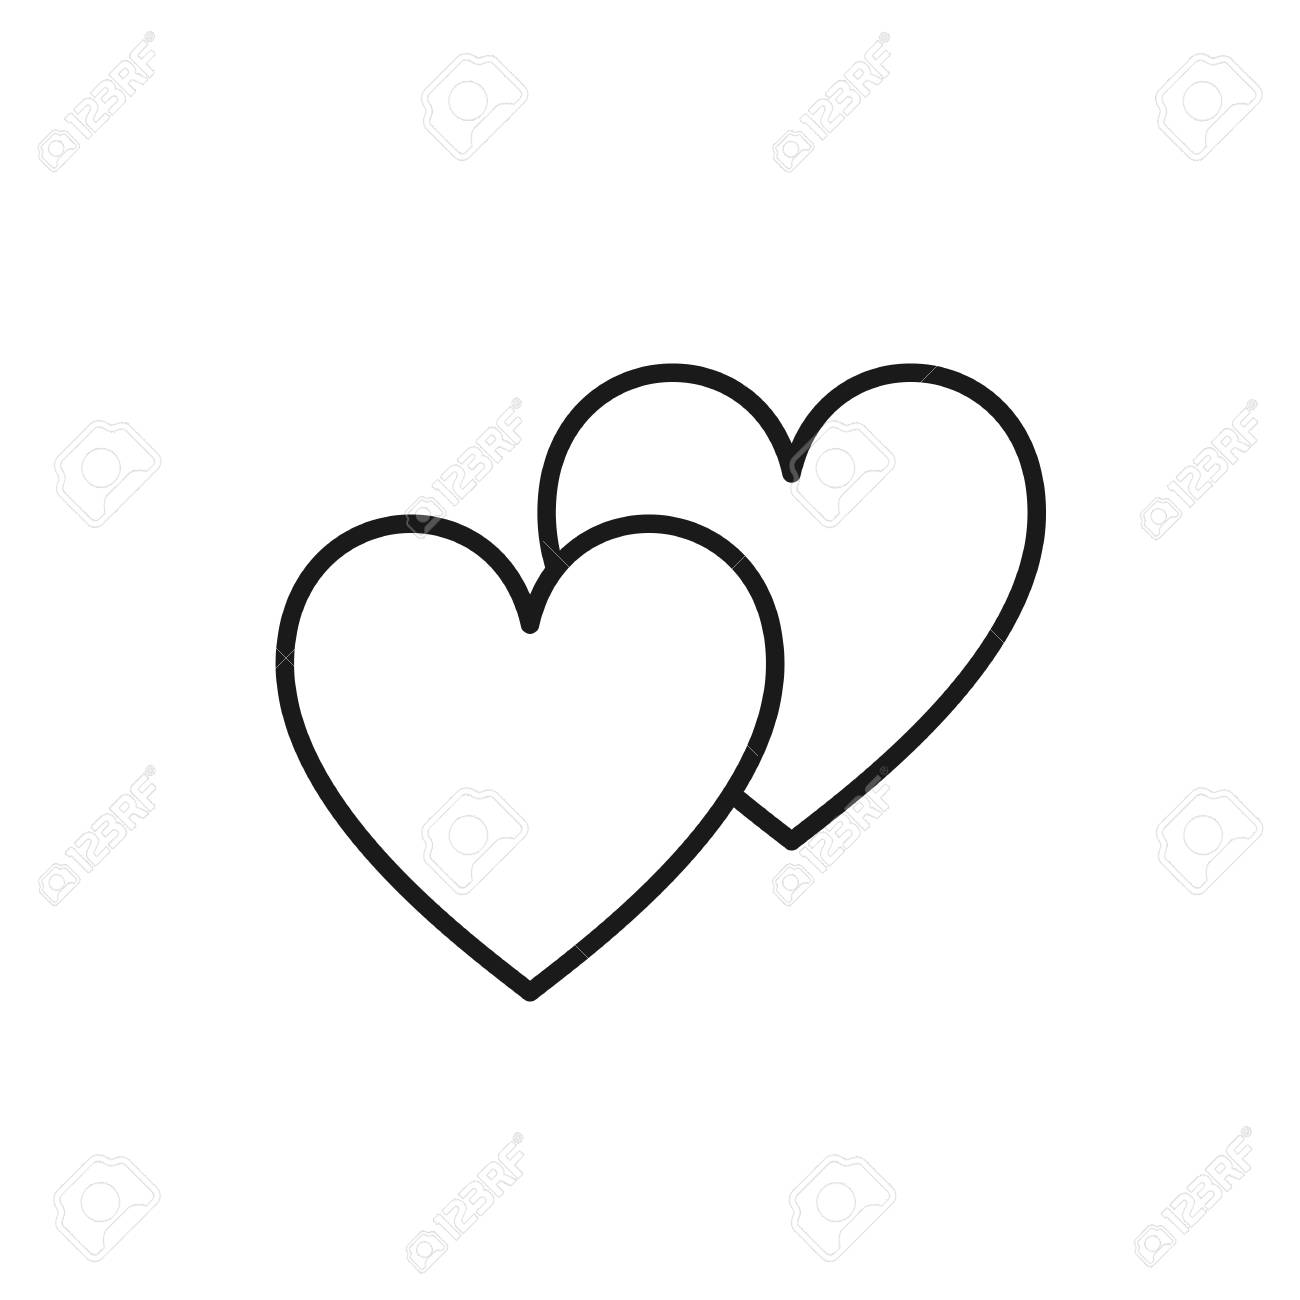 Black isolated outline icon of two hearts on white background line icon of two hearts